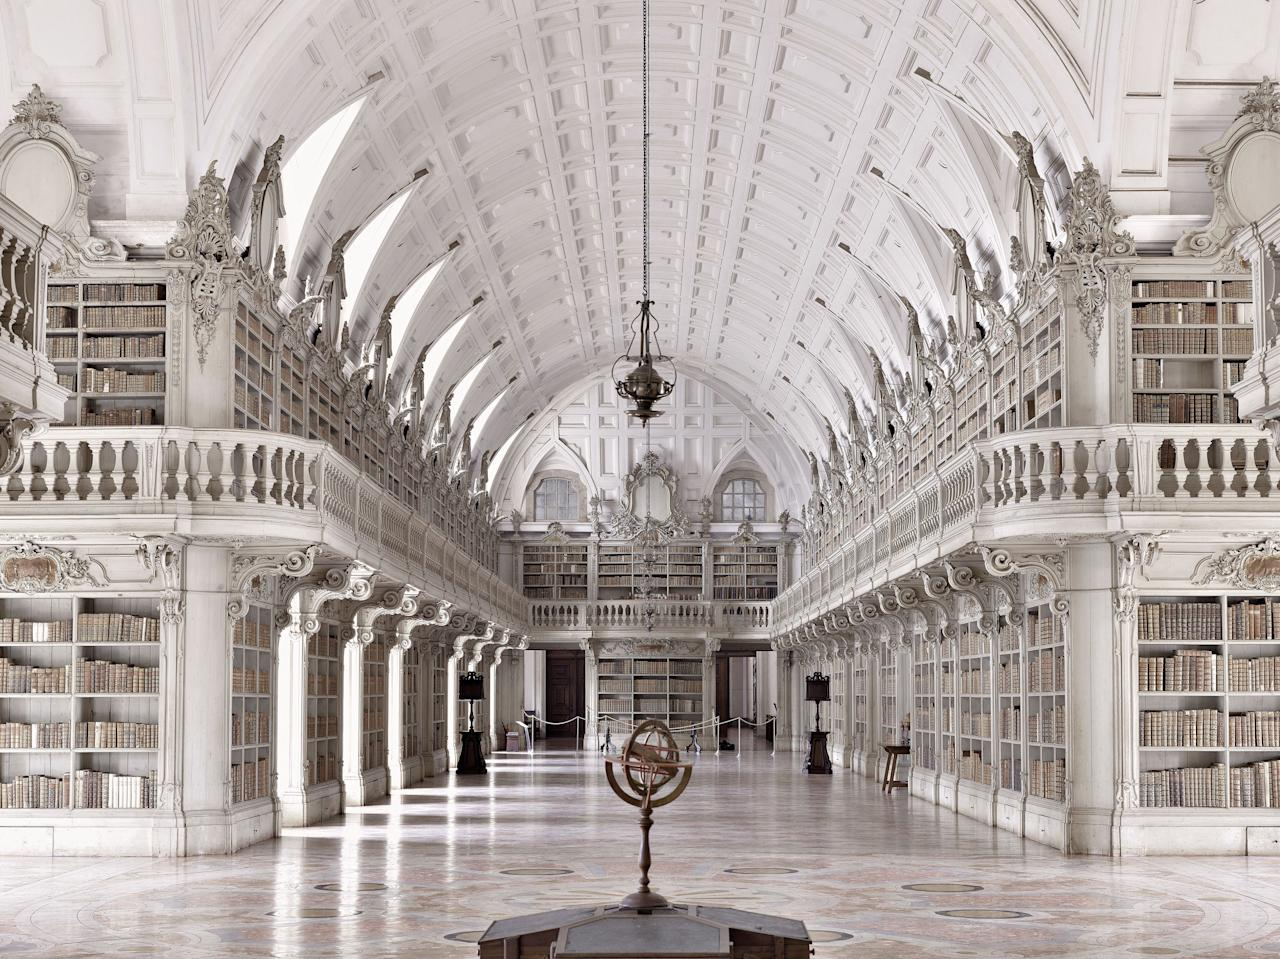 "<p>When it comes to architecture, the interior of a library might not be the first thing that comes to mind. However, with the release of Florence-based photographer Massimo Listri's new book, <em><a href=""https://www.taschen.com/pages/en/catalogue/photography/all/05763/facts.massimo_listri_the_worlds_most_beautiful_libraries.htm"" target=""_blank"">The World's Most Beautiful Libraries</a> </em>(to be released by TASCHEN on August 30<em>)</em>, that's all going to change. Scroll through for a peek at some of the world's oldest <a href=""https://www.veranda.com/decorating-ideas/g1231/library-design-ideas/"" target=""_blank"">libraries</a>, boasting everything from exquisite spiral staircases to elaborate ceiling paintings. </p><p></p>"